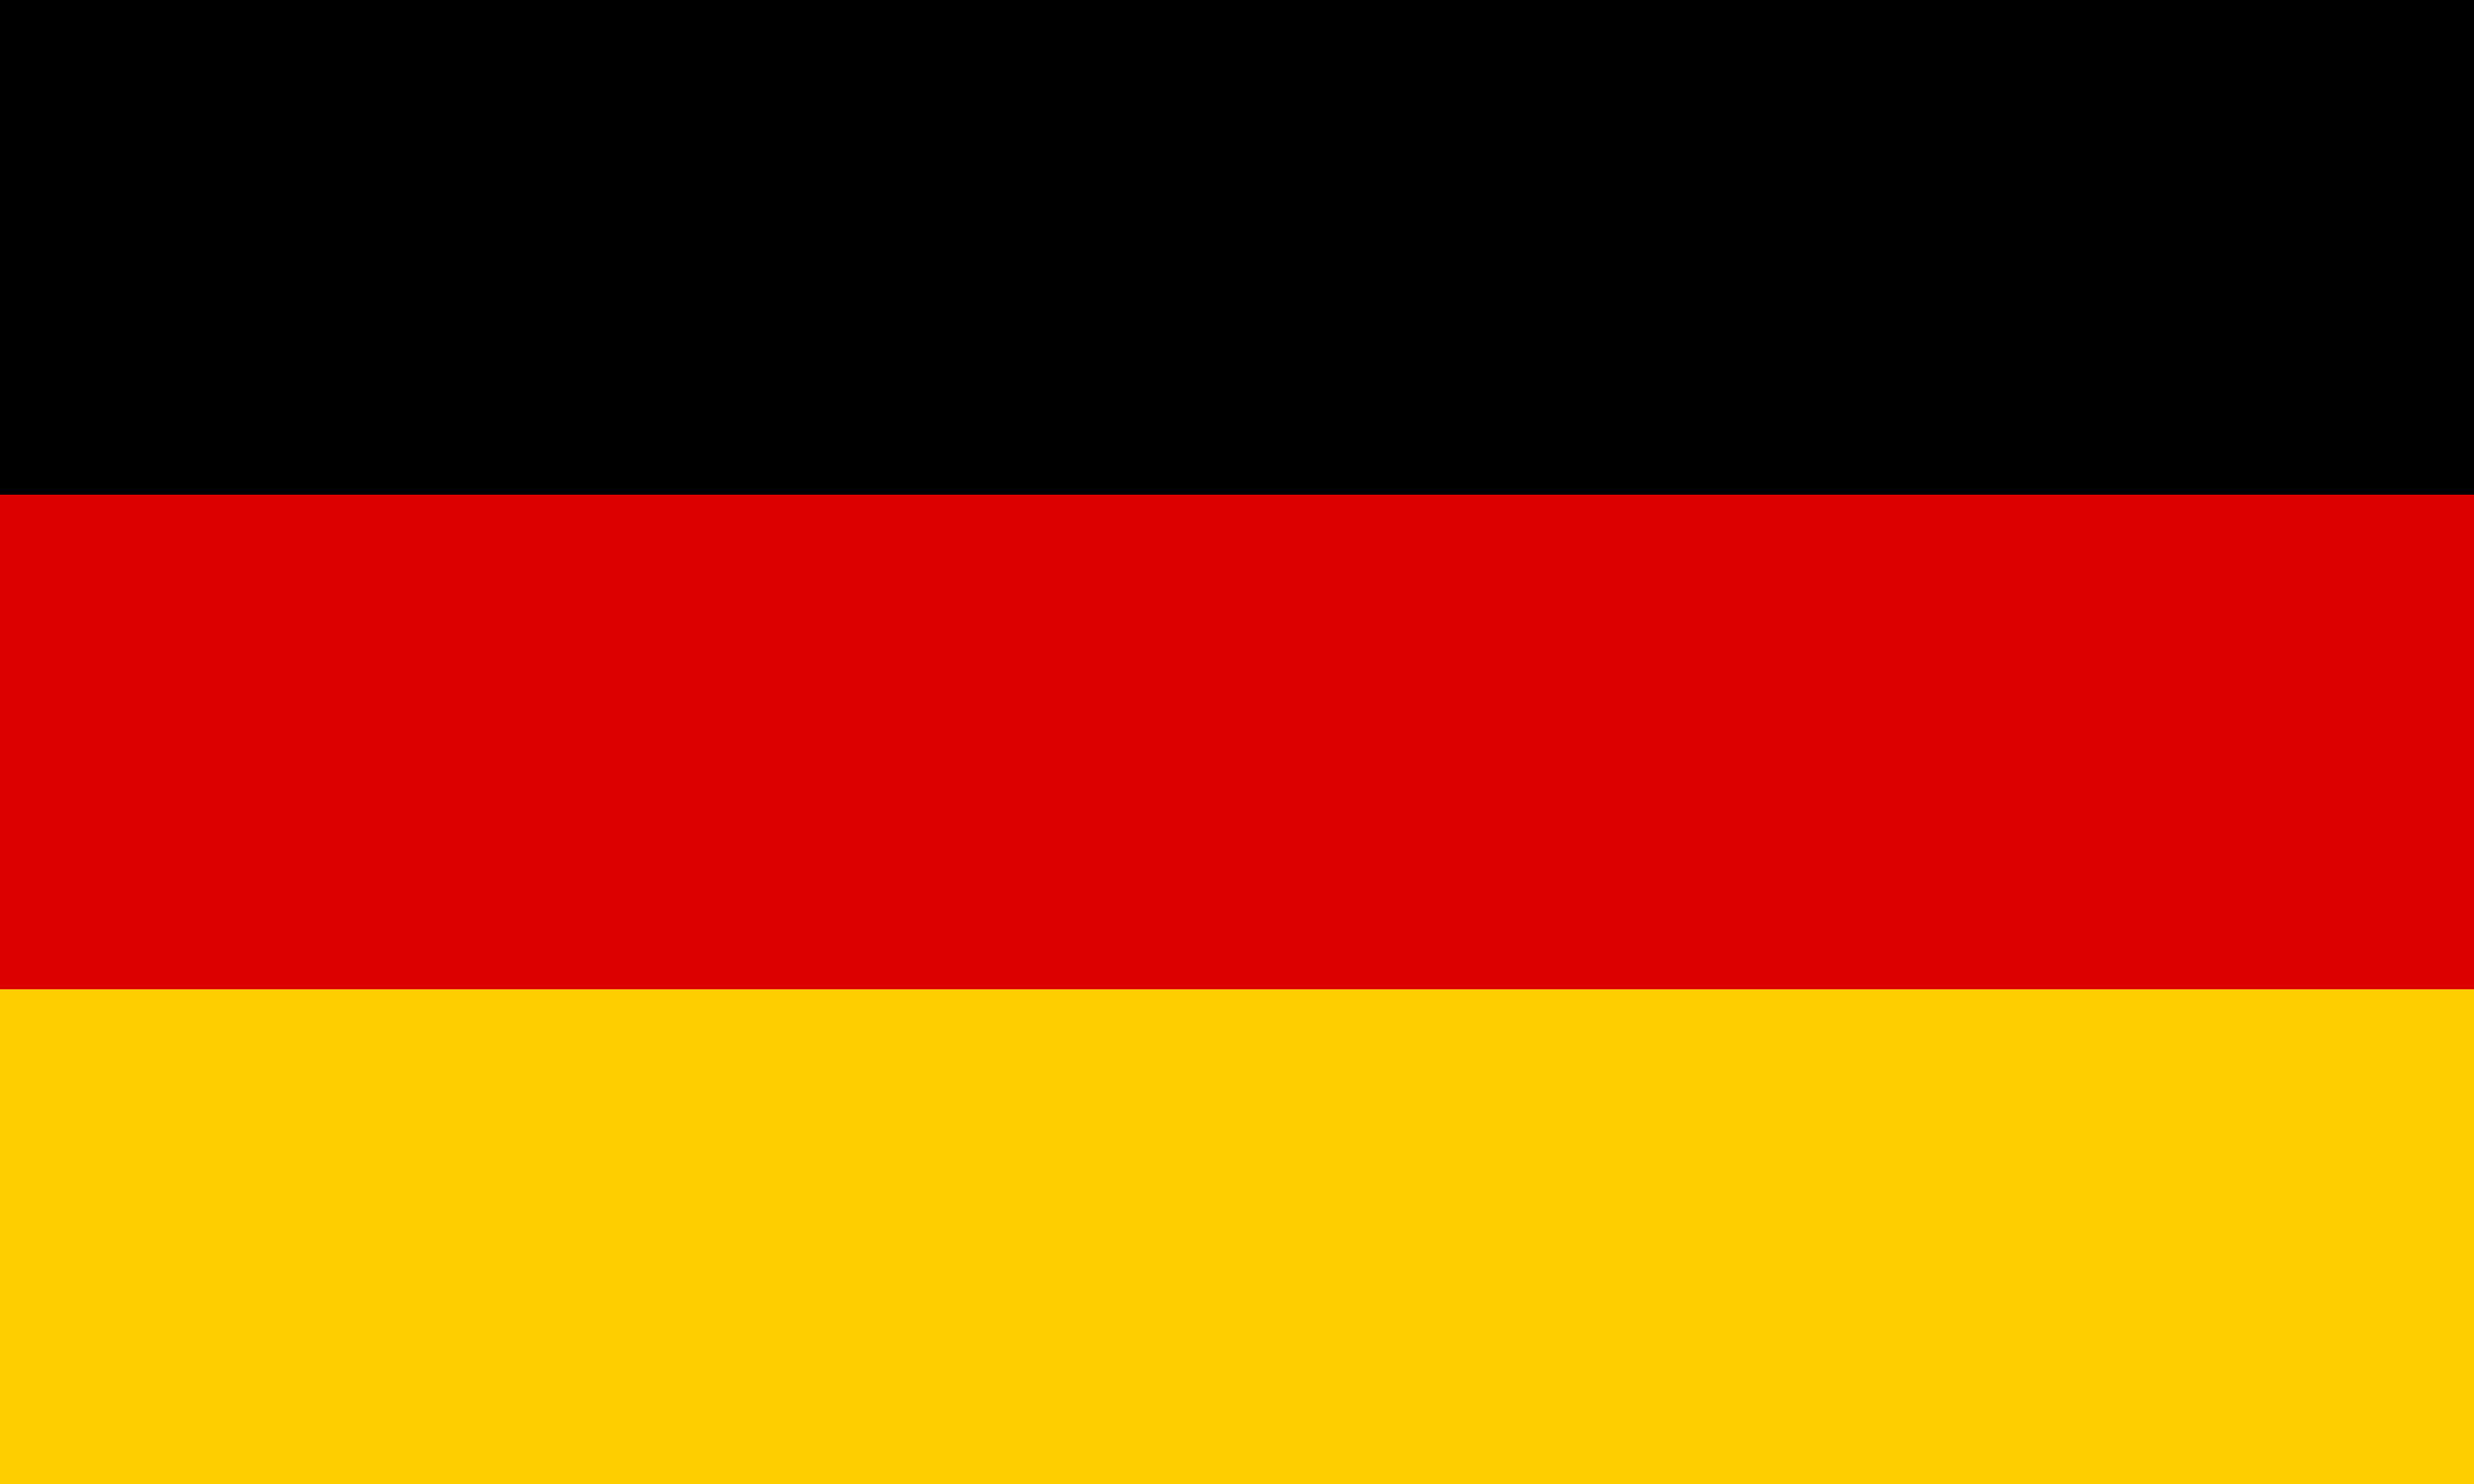 http://abbeyprecisionengineering.webs.com/german-flag.png